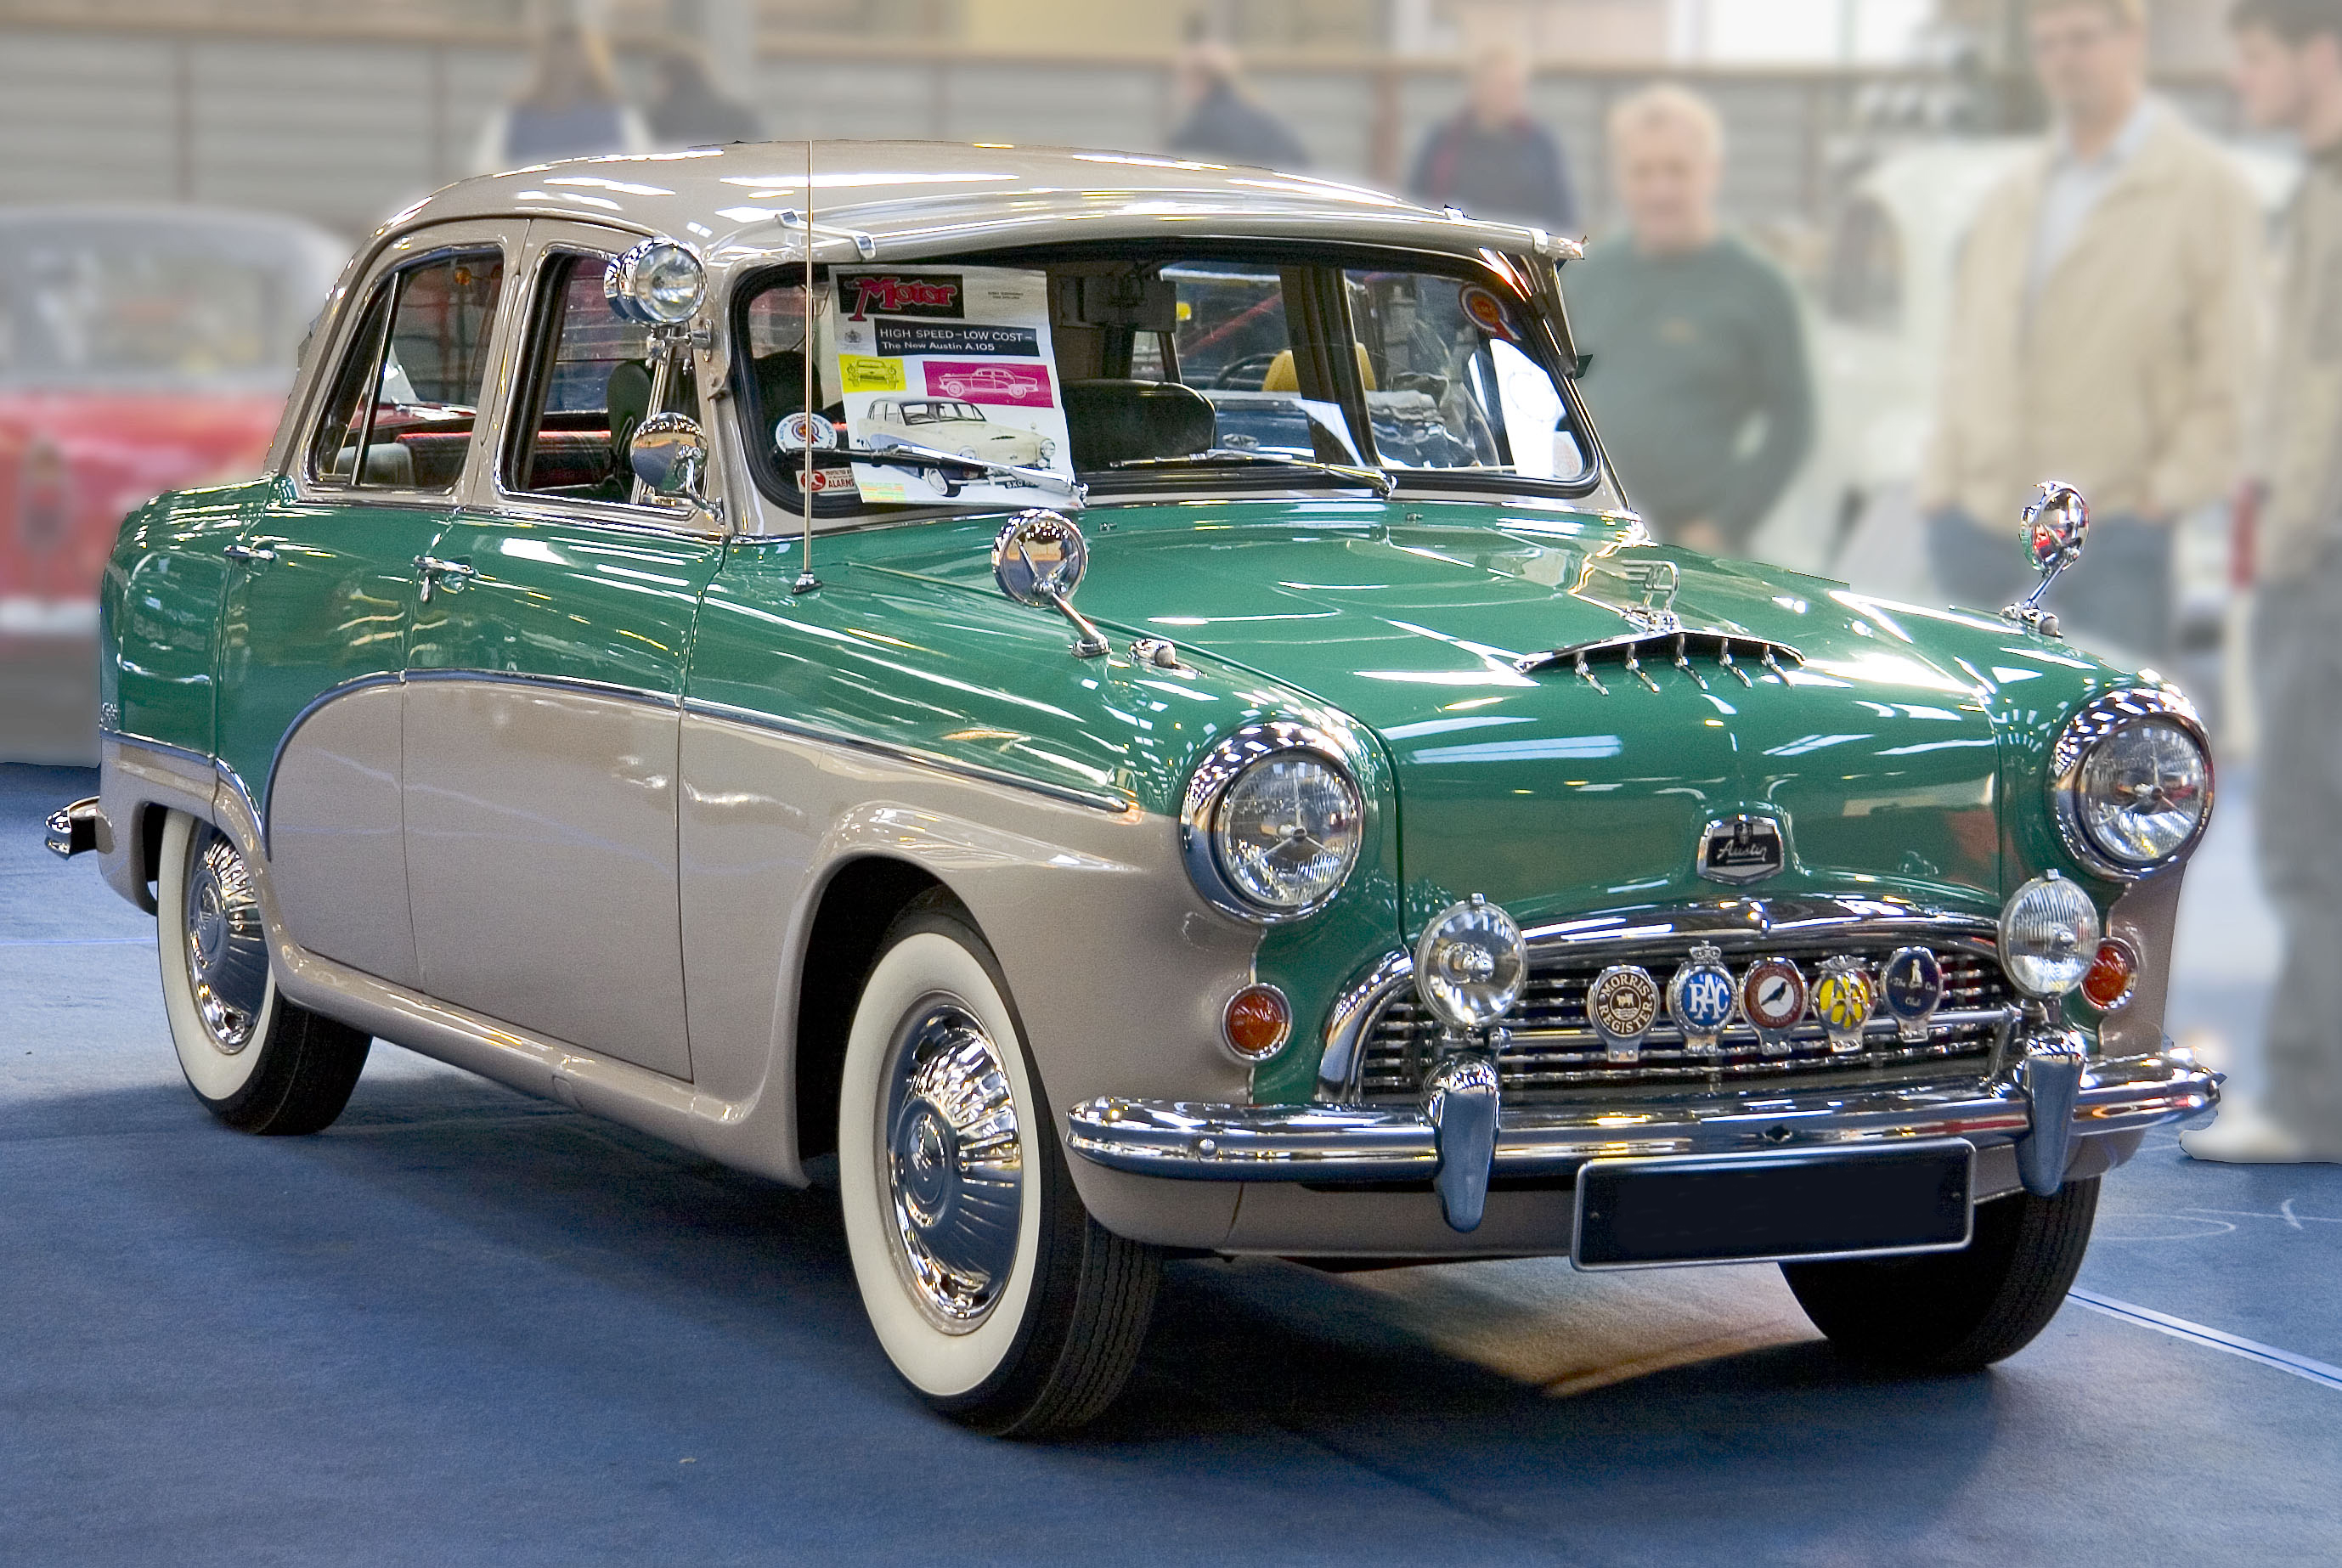 Cars Under 100 >> File:Austin A105 Westminster 1956 front.jpg - Wikimedia Commons